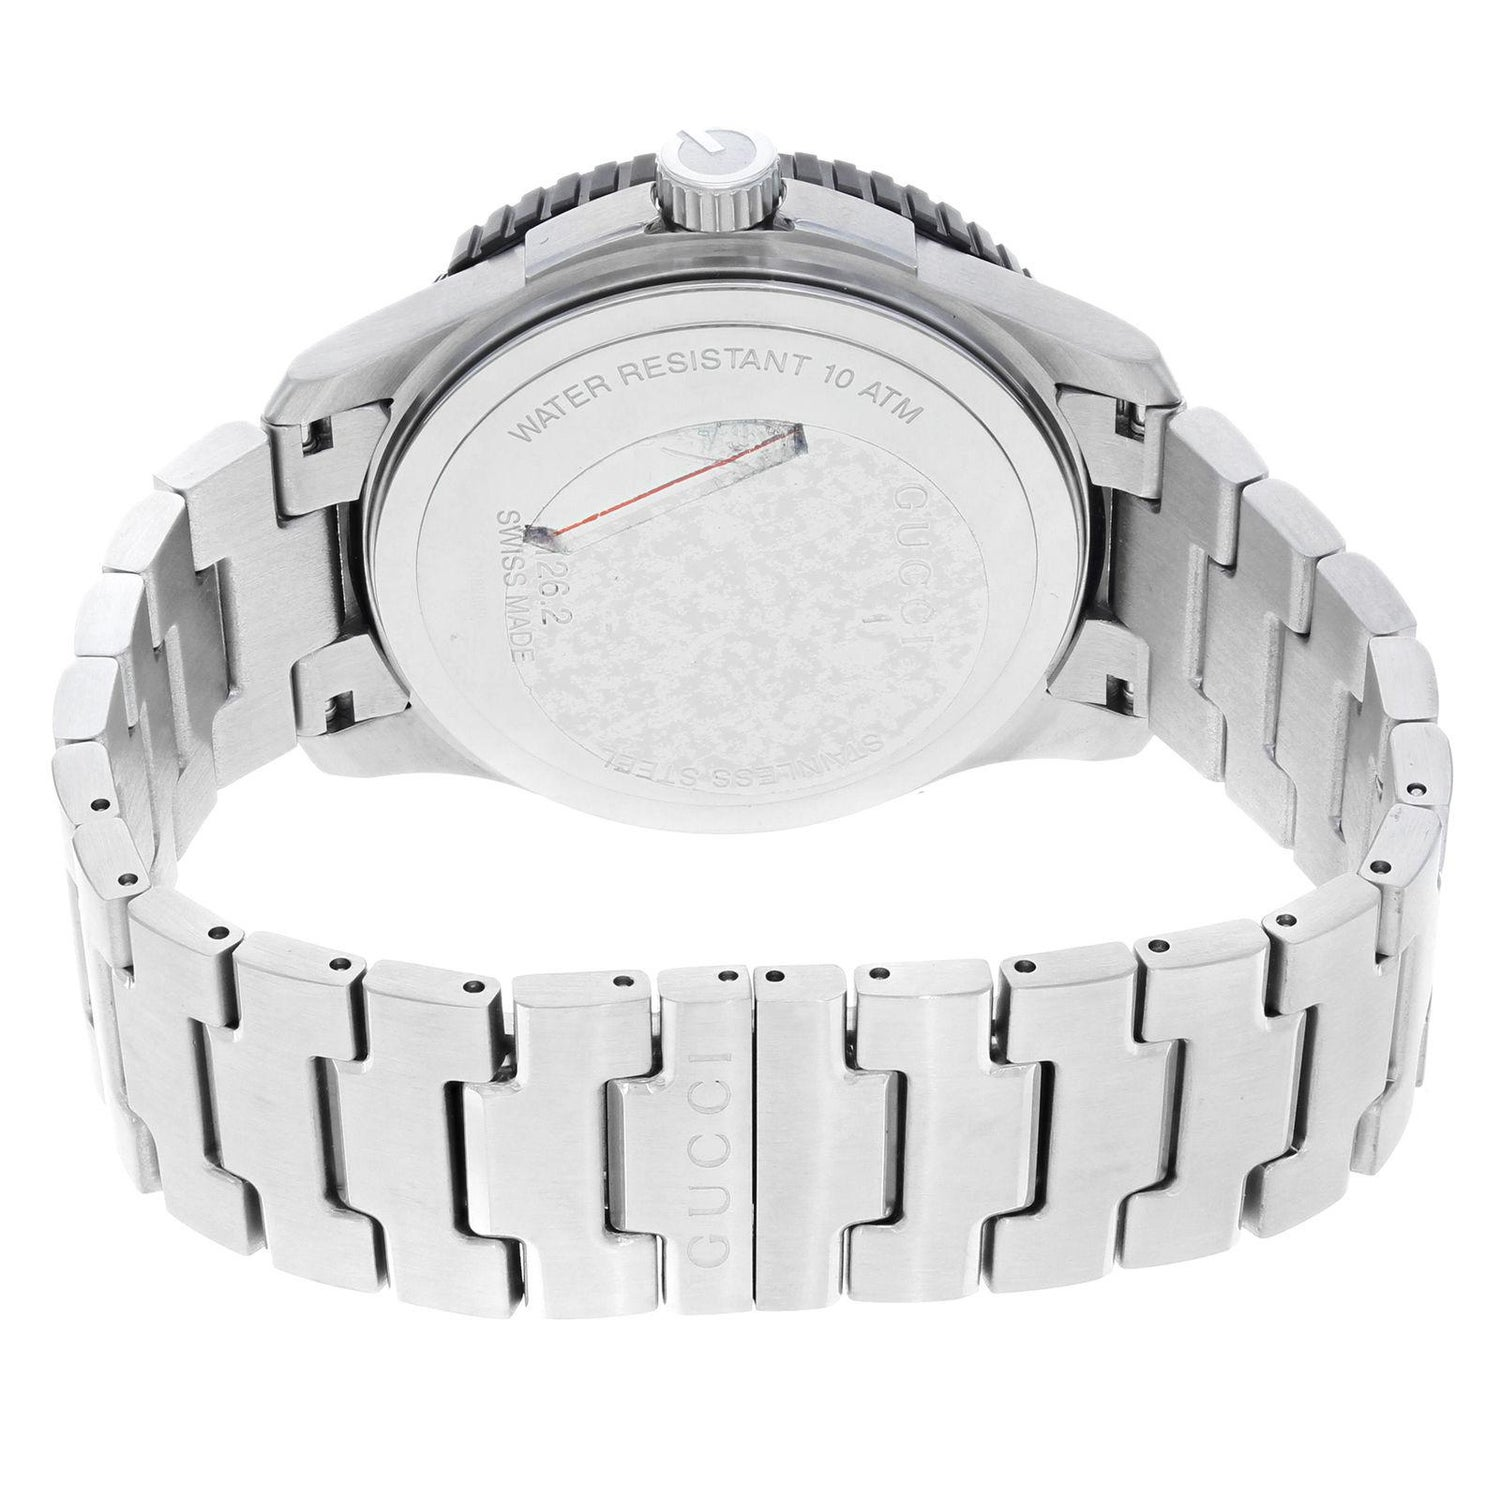 6044594a754 Gucci G-Timeless Sport Steel Plastic Swiss Rotational Quartz Watch YA126250  For Sale at 1stdibs